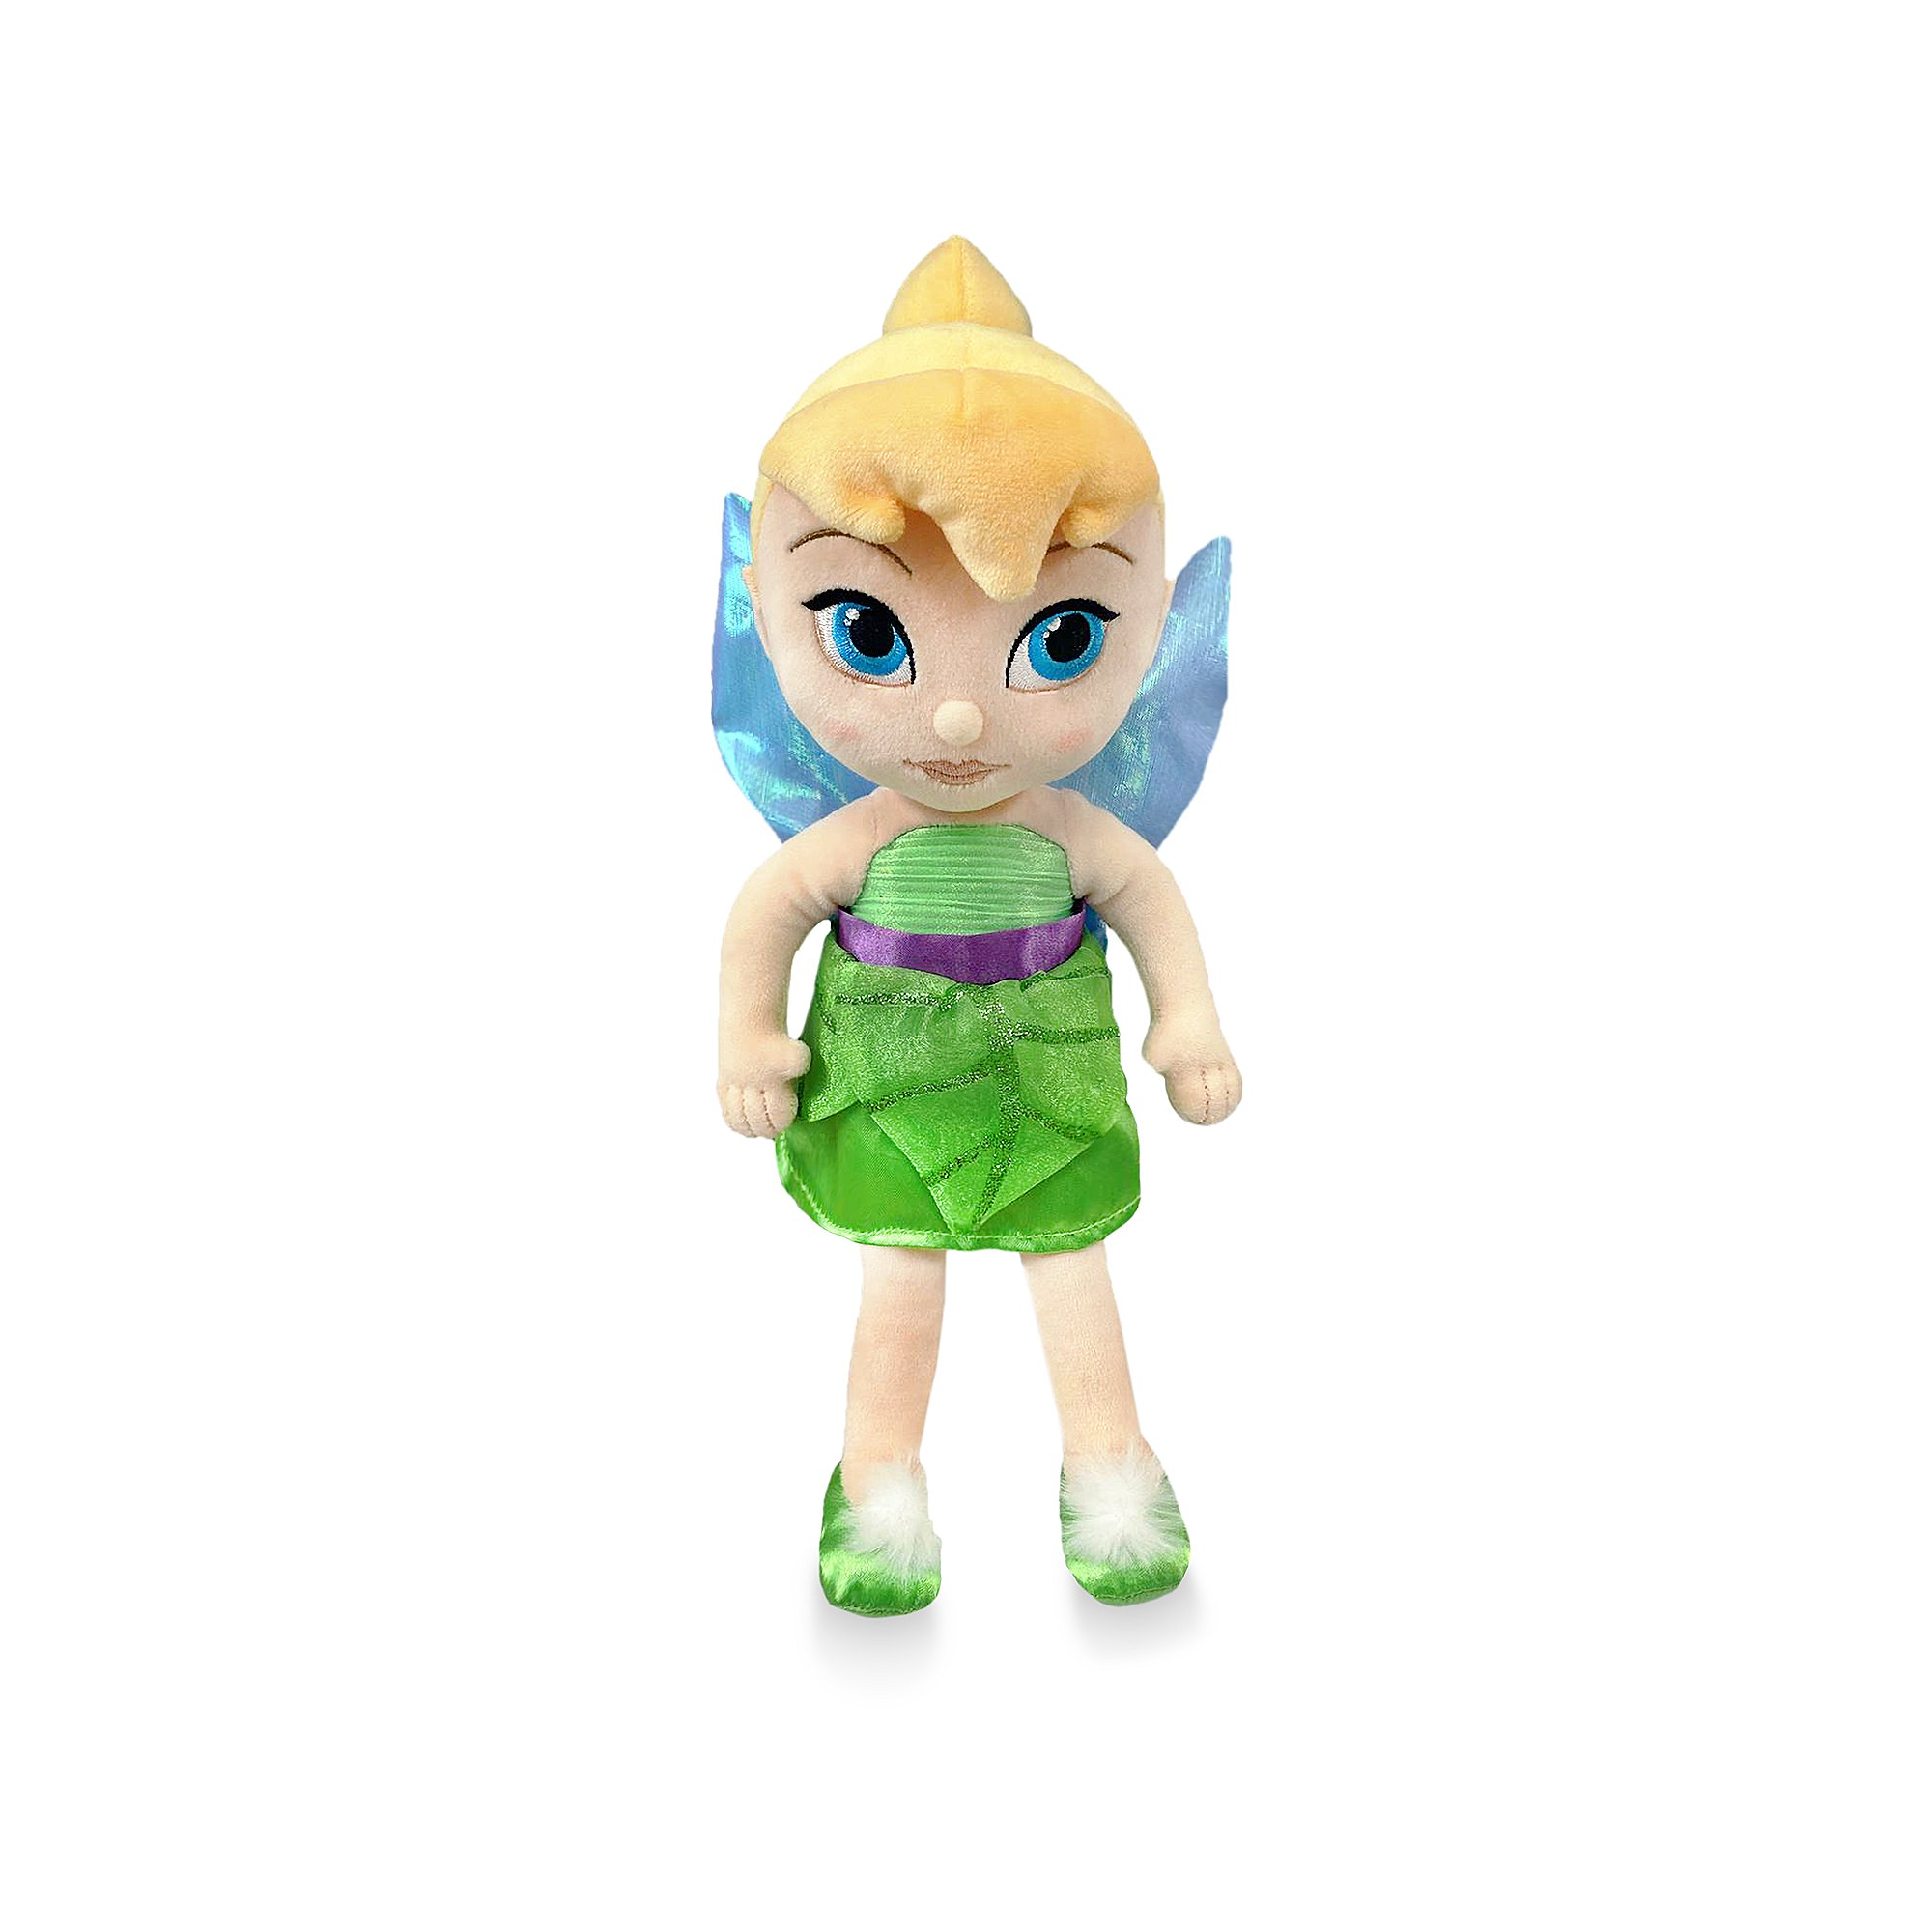 Disney Fairies Animators' Collection Tinker Bell Plush Doll